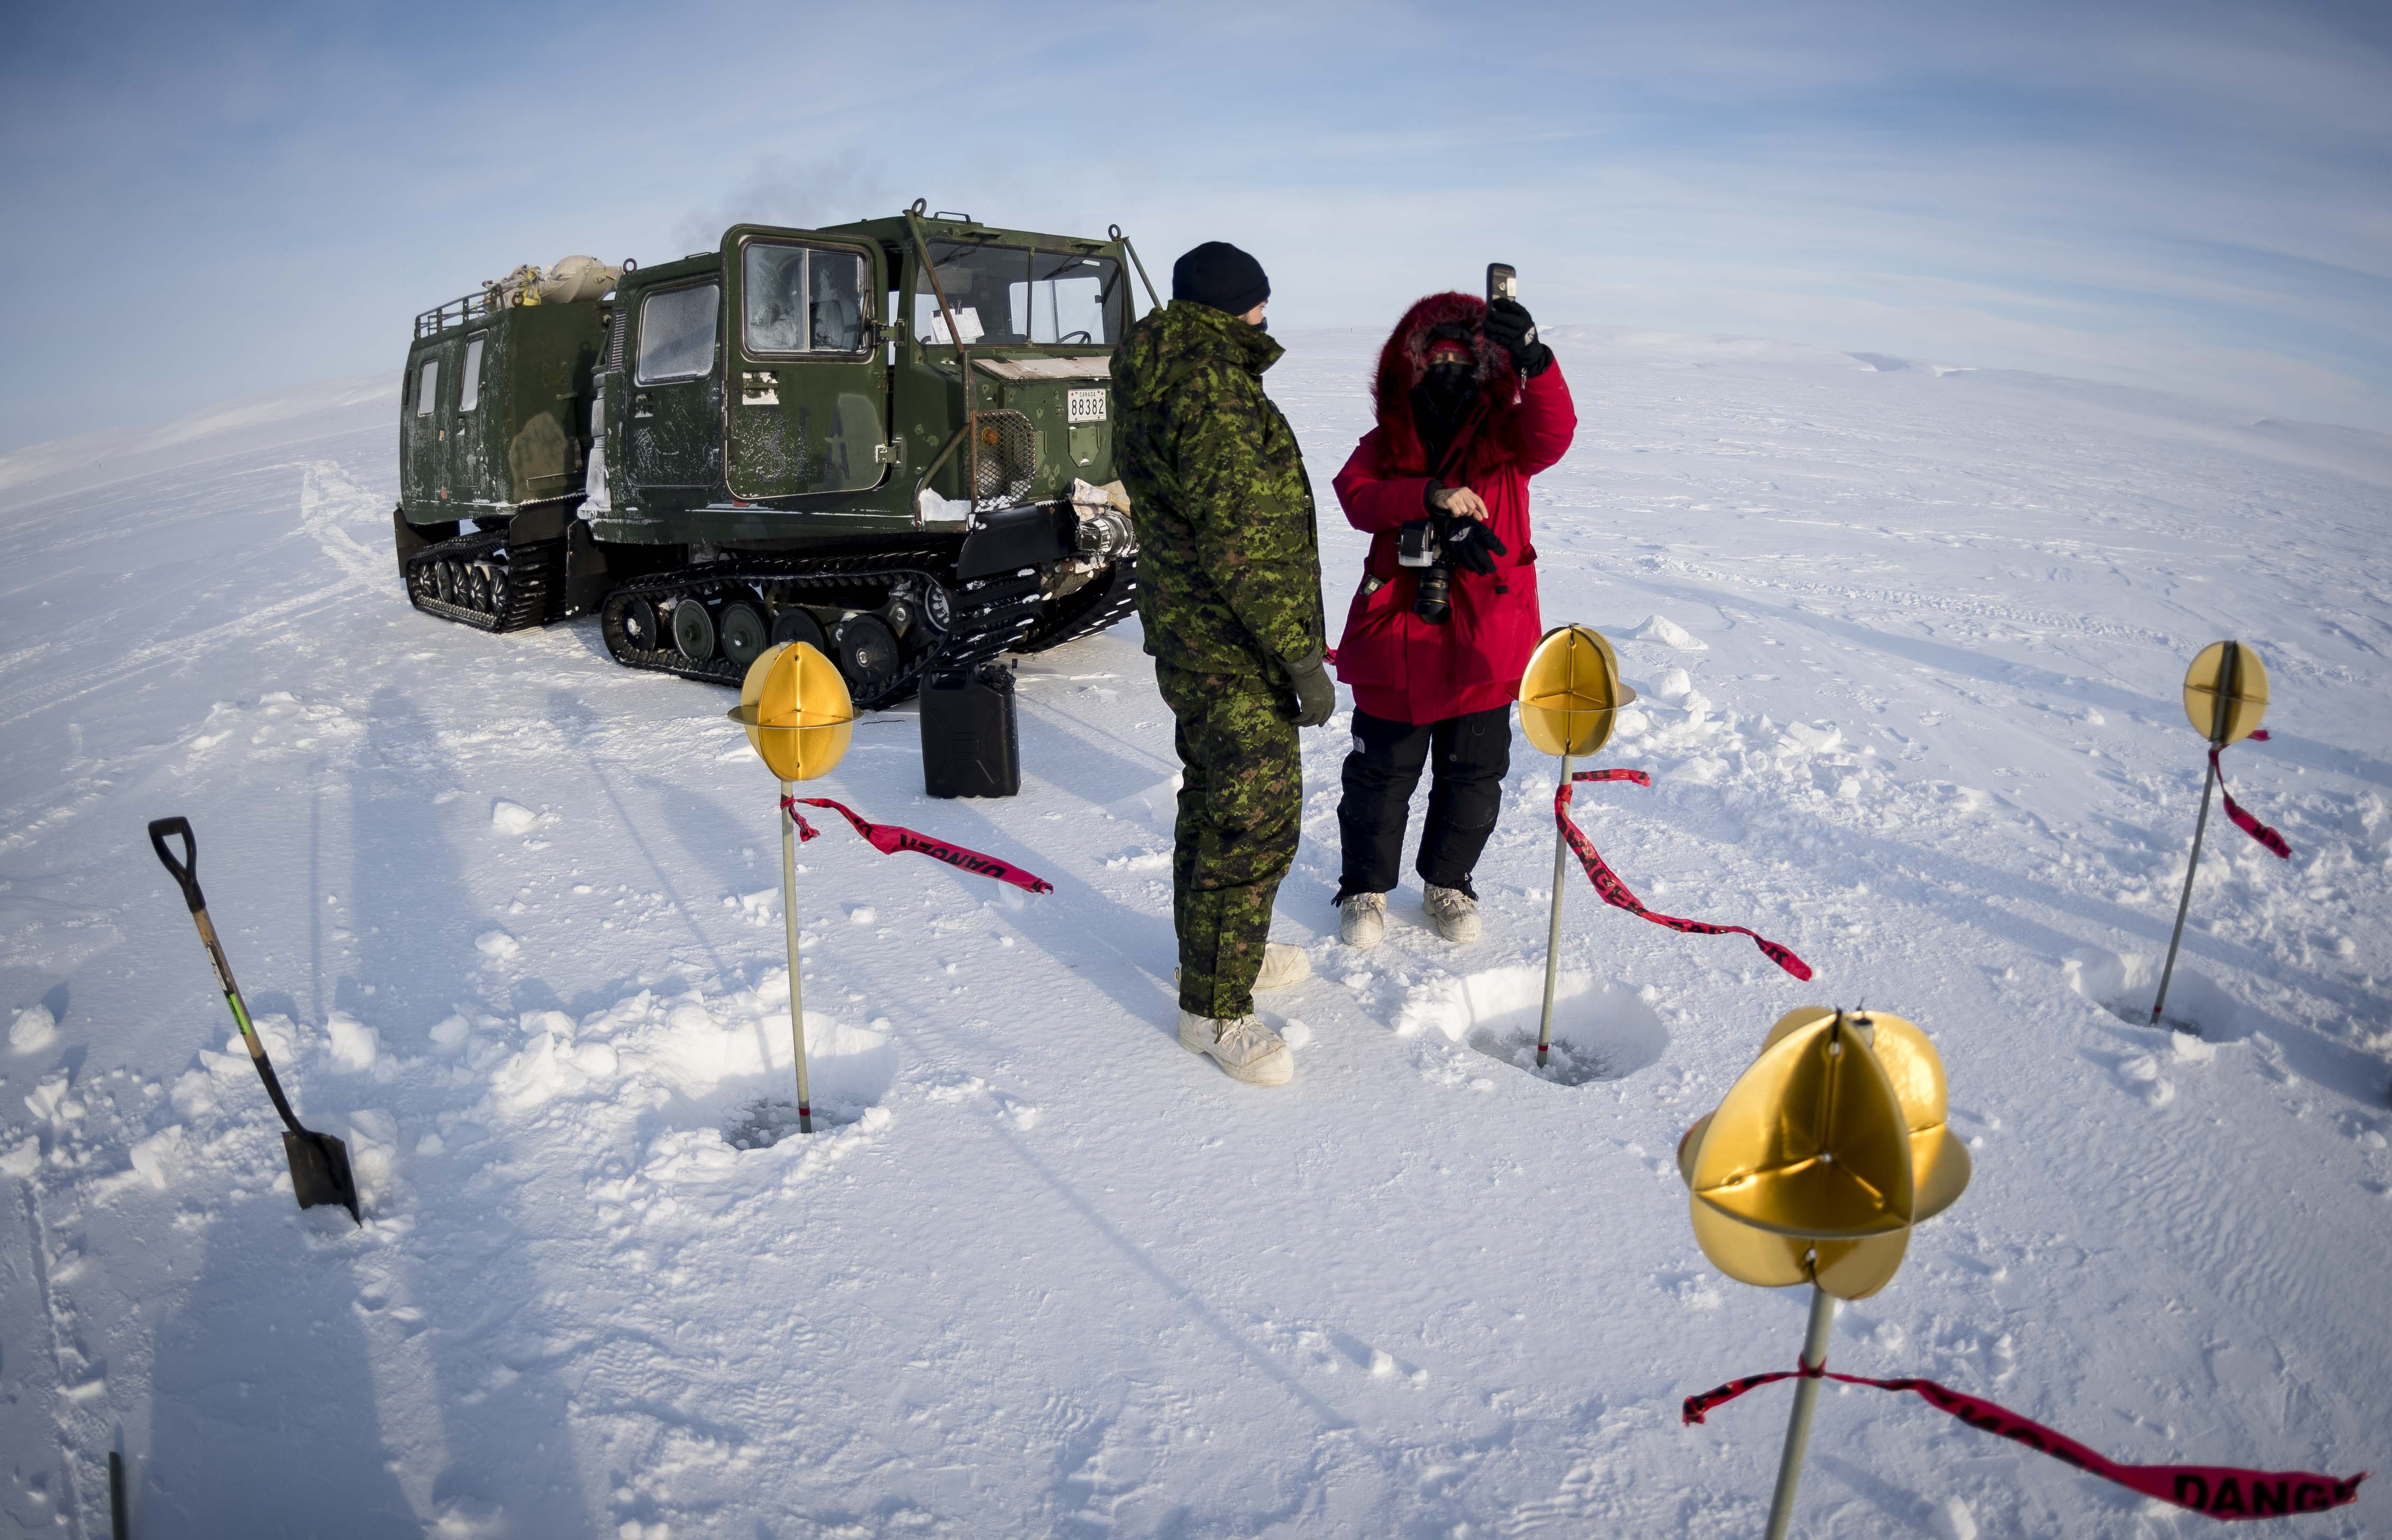 Two people, one wearing a camouflage uniform and the other winter clothing, stand in snow in front of a green tracked vehicle. Around them are small poles planted in the snow with round yellow objects at their tip.